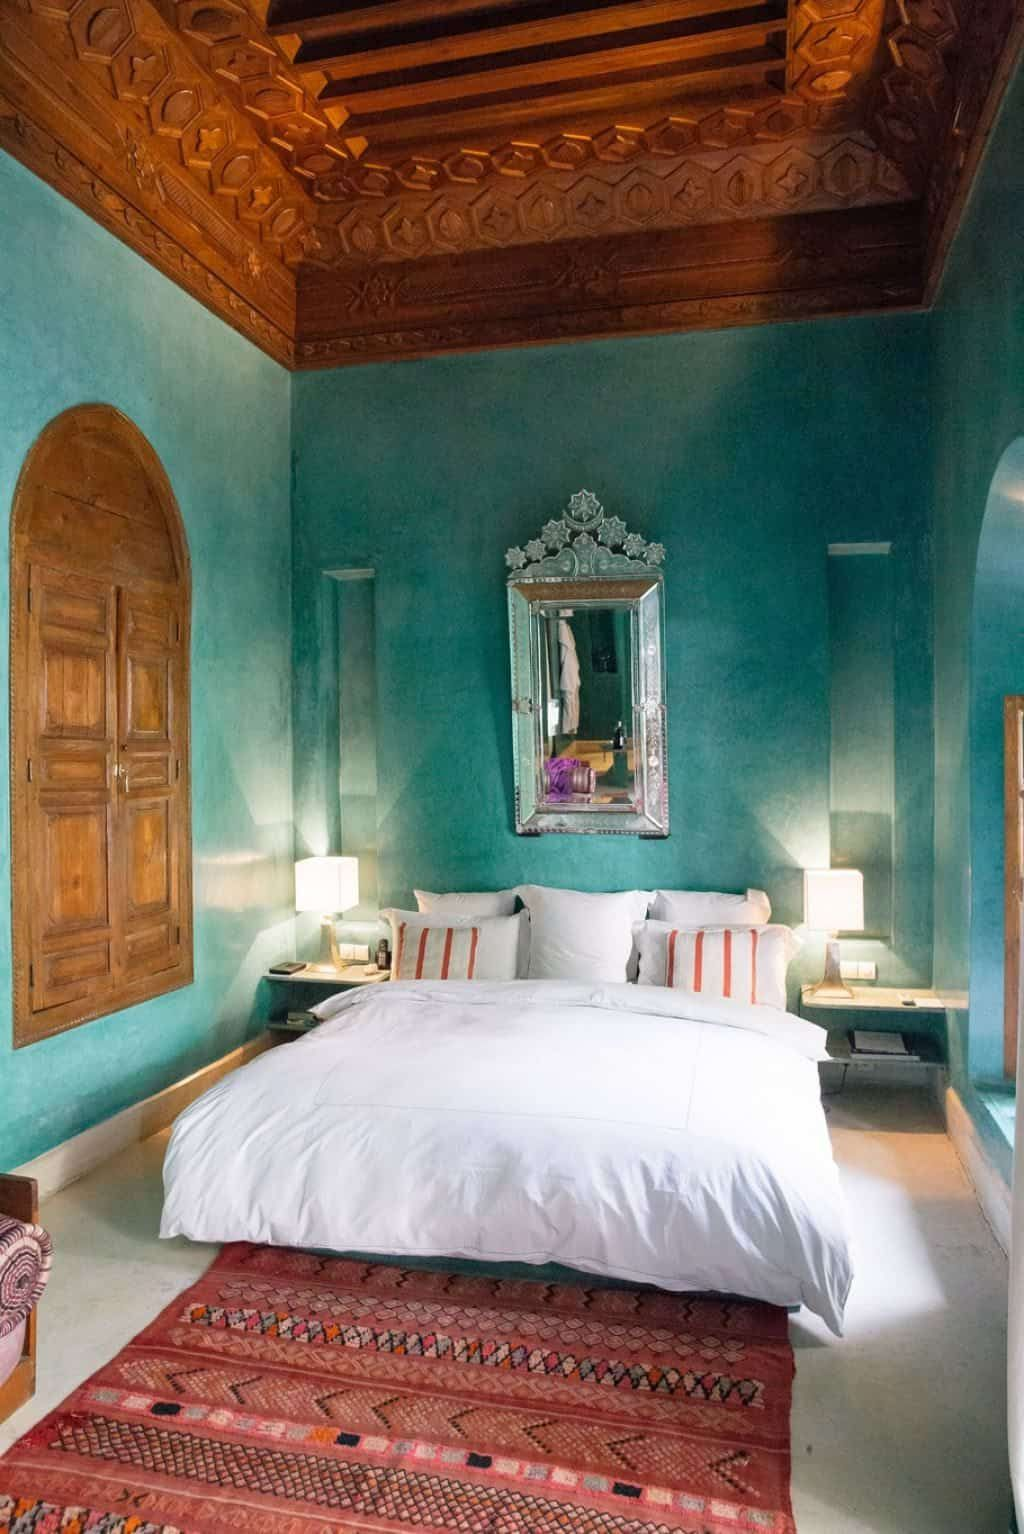 Moroccan Themed Bedroom With Ornate Wall Mirror And Blue Wall Colors ...